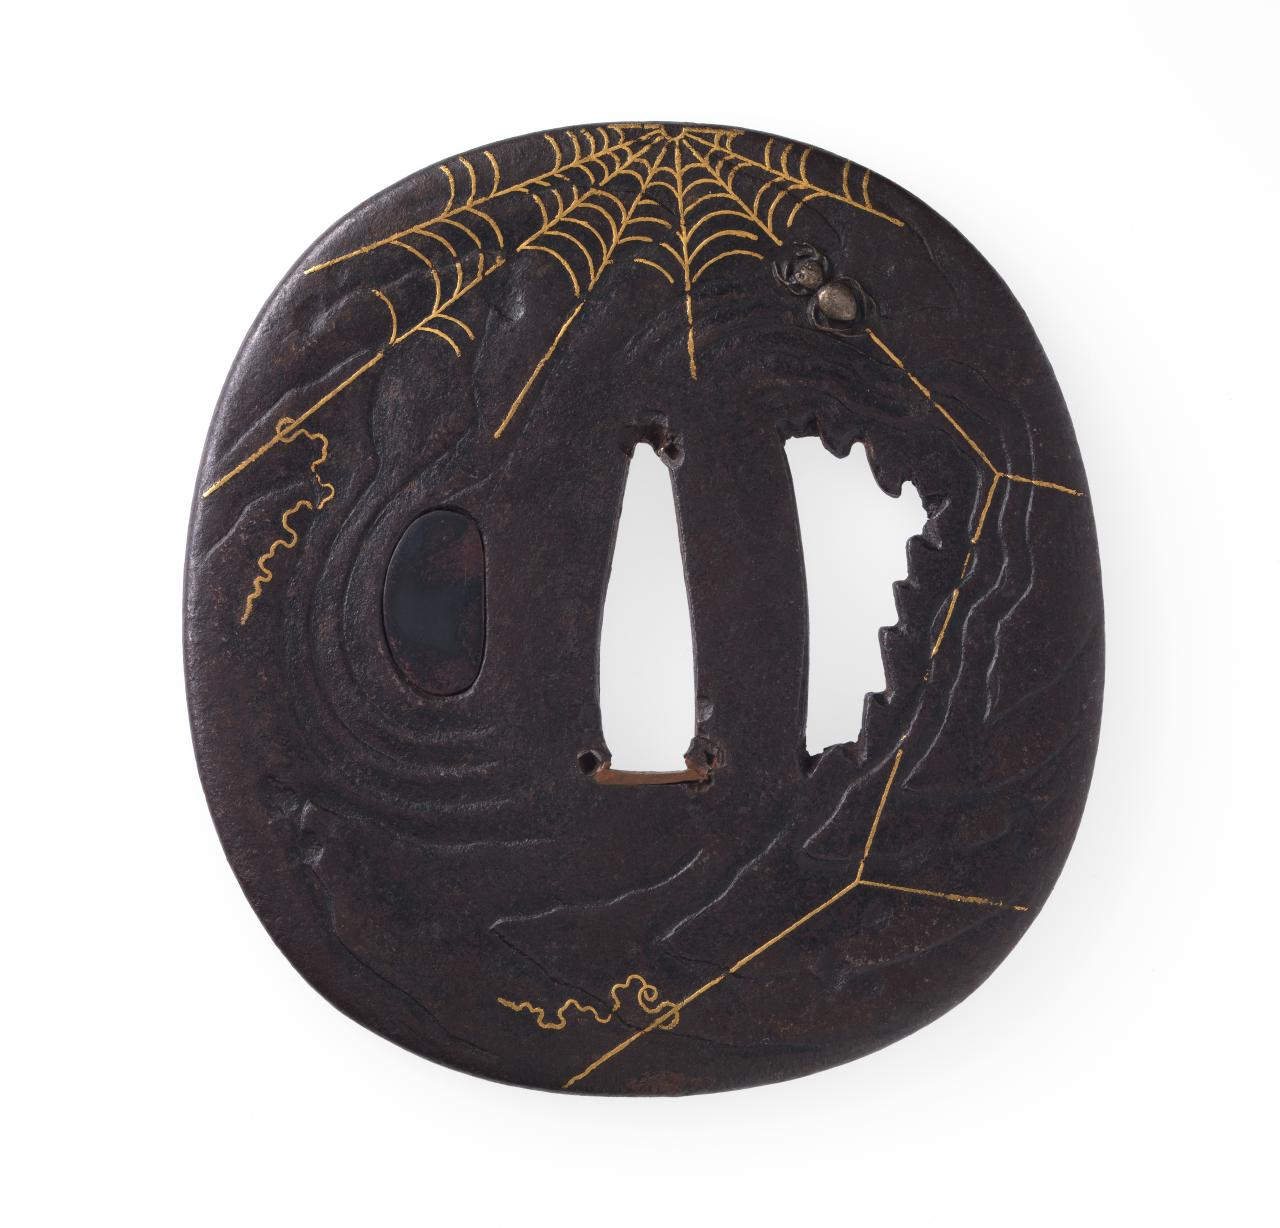 Sword guard with spider and cobweb design